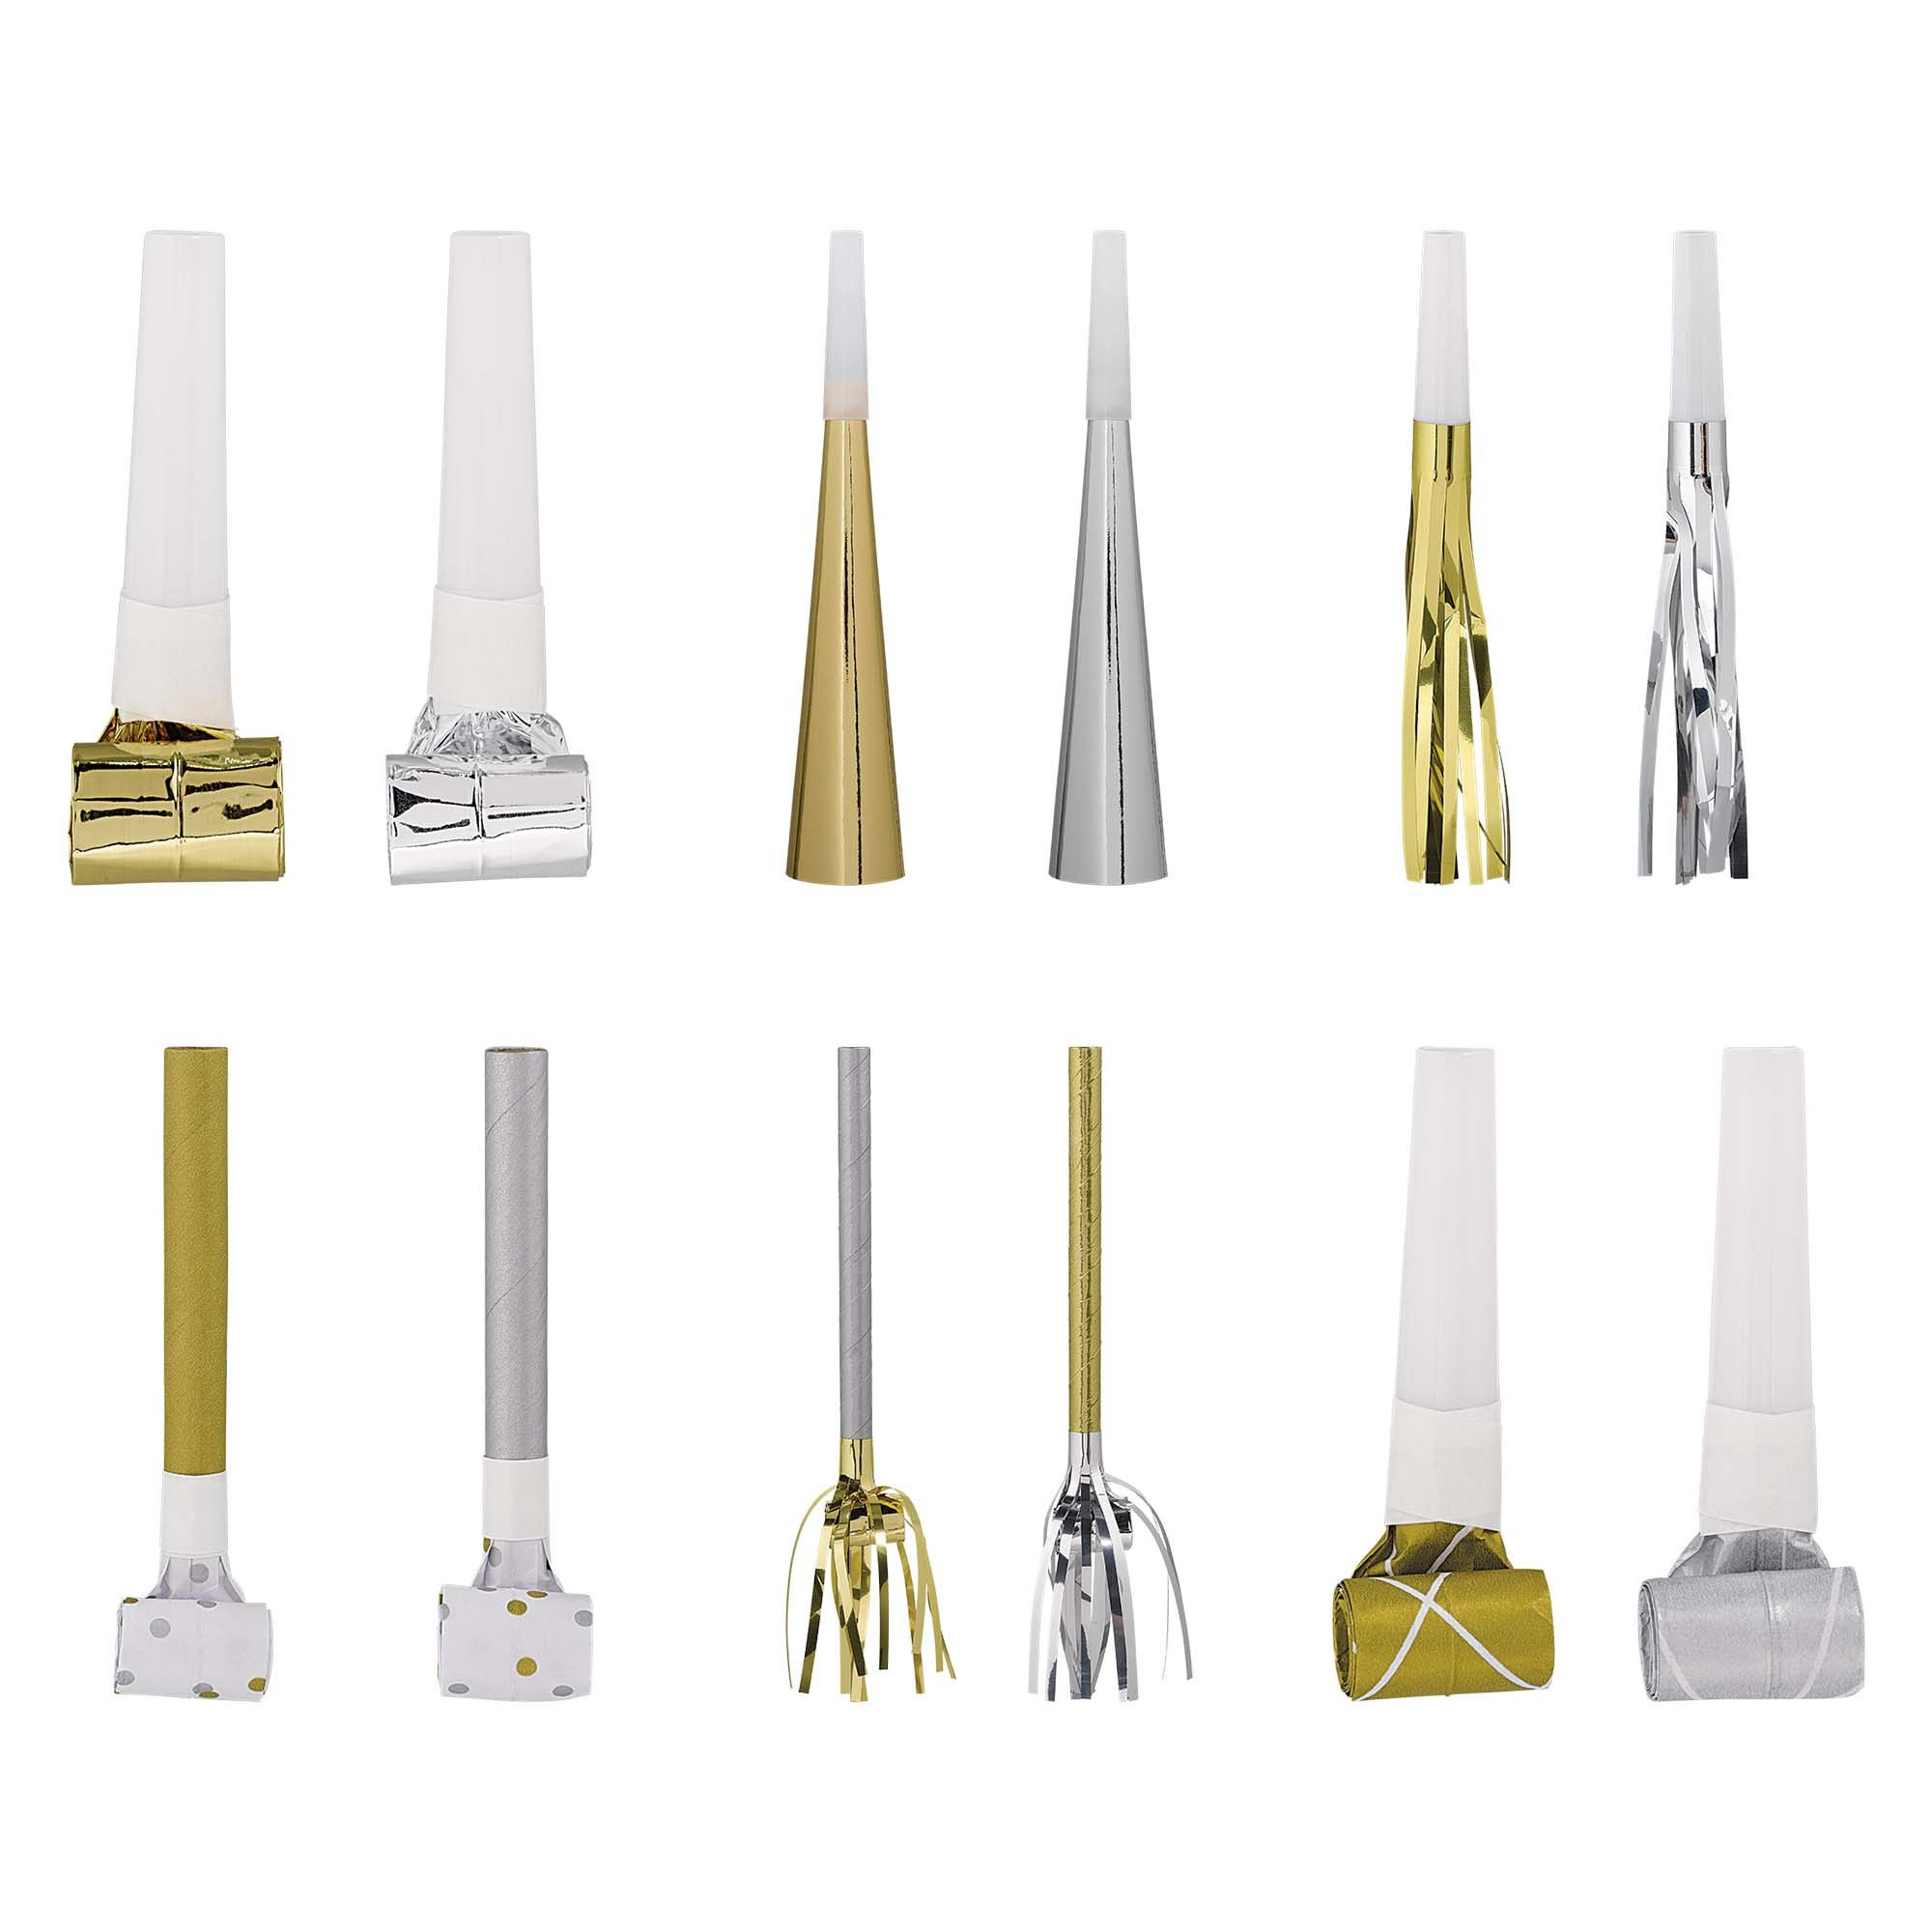 Bday Access S&G Noisemakers Mega Pack